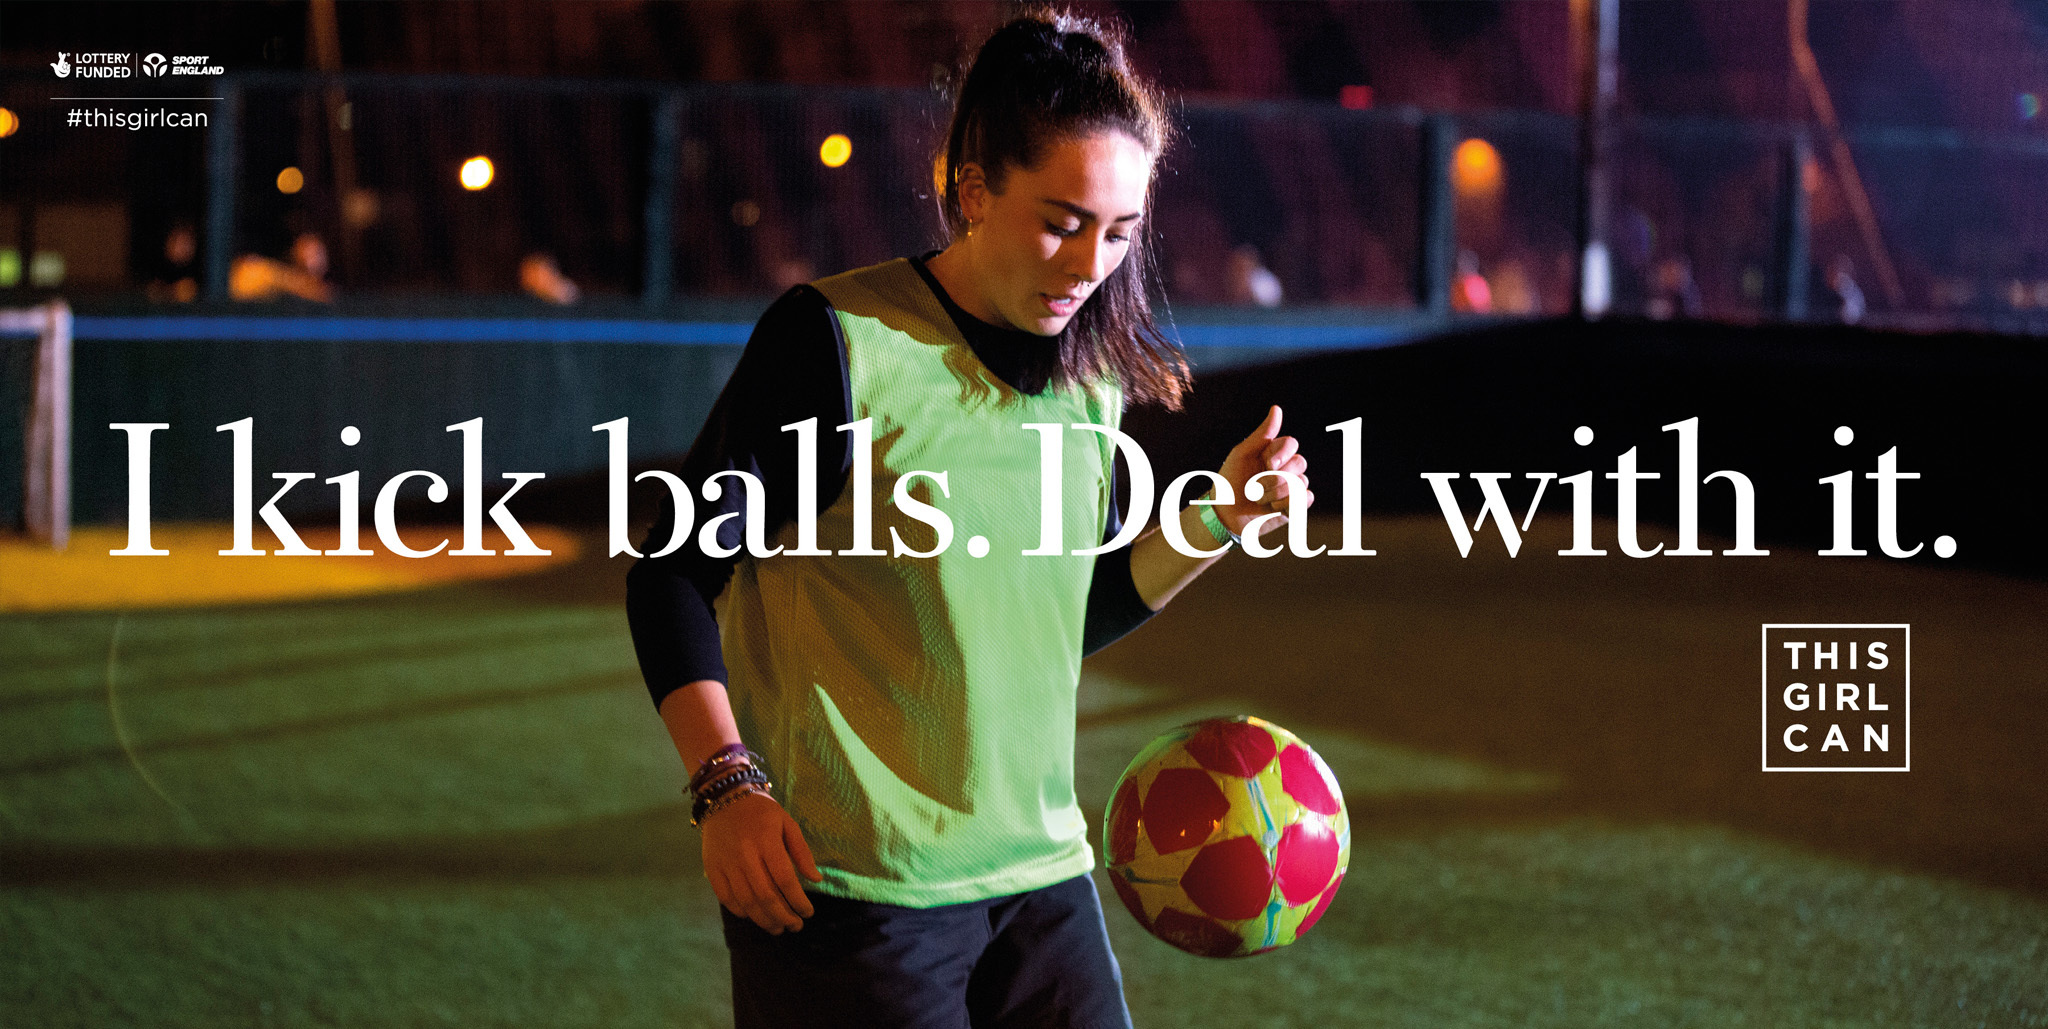 This Girl Can Mantra Image - I Kick Balls, Deal With it